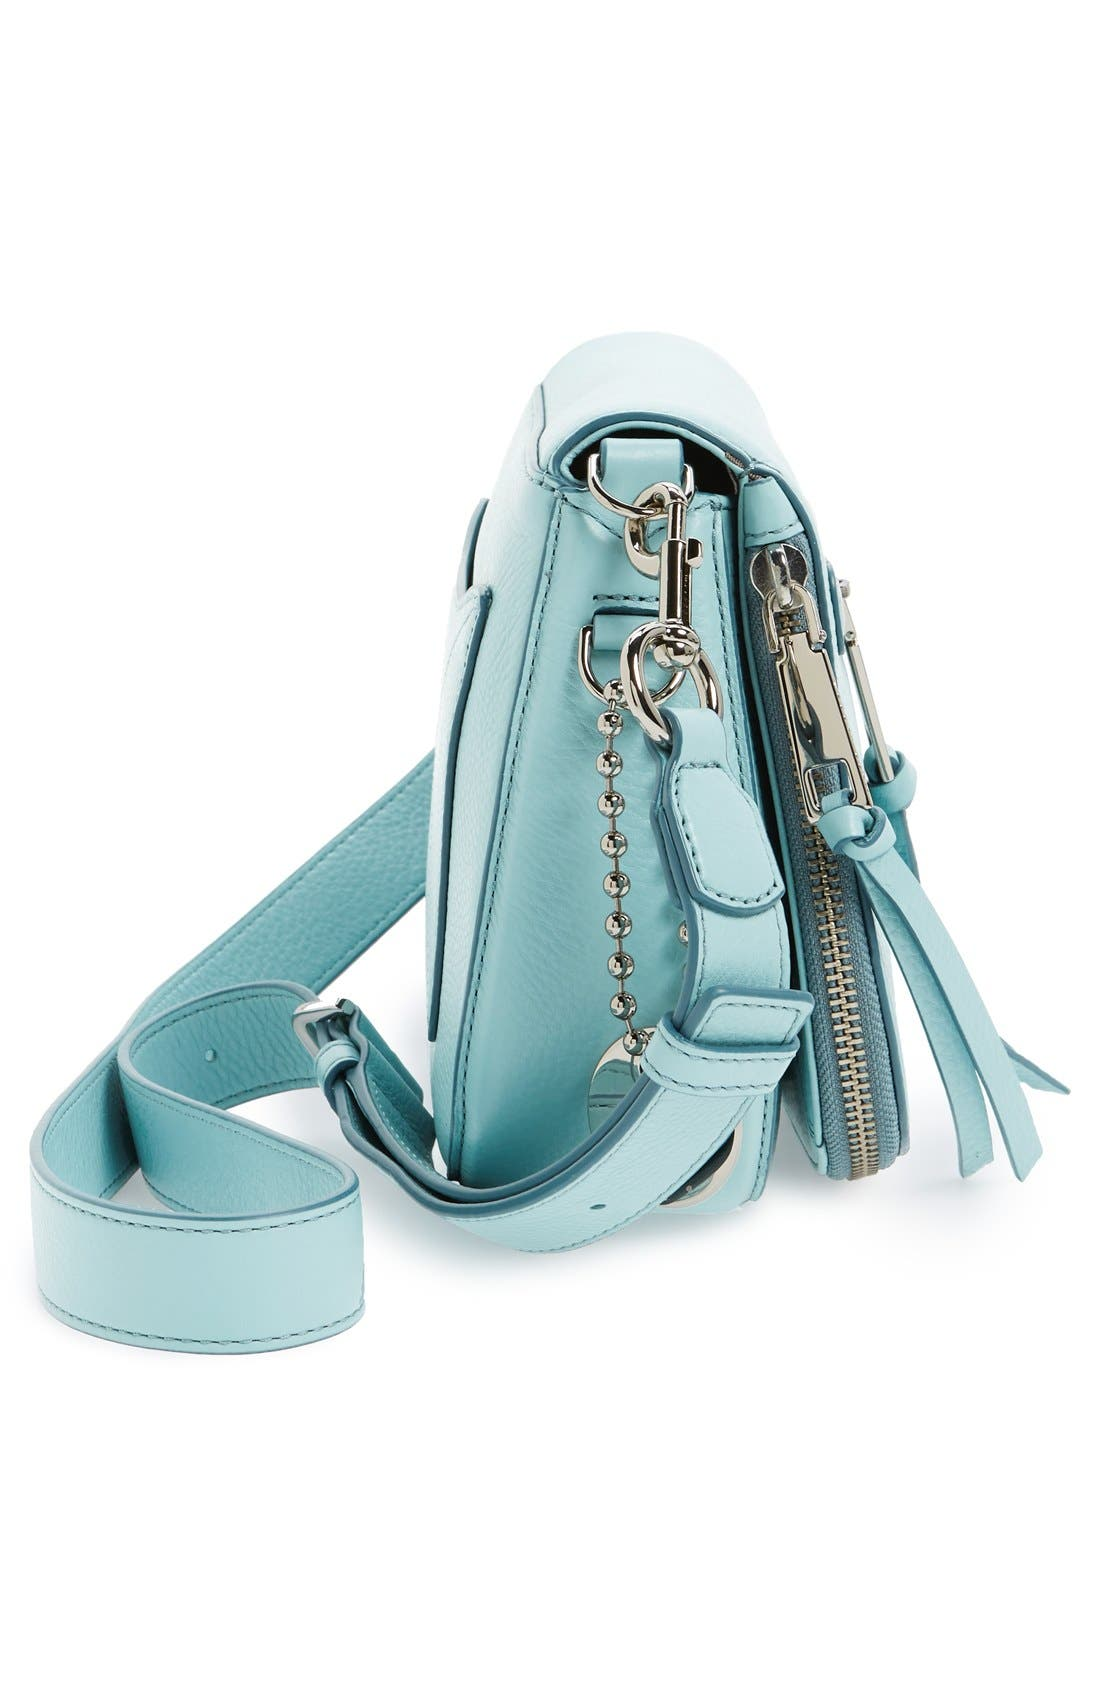 Small Recruit Nomad Pebbled Leather Crossbody Bag,                             Alternate thumbnail 65, color,